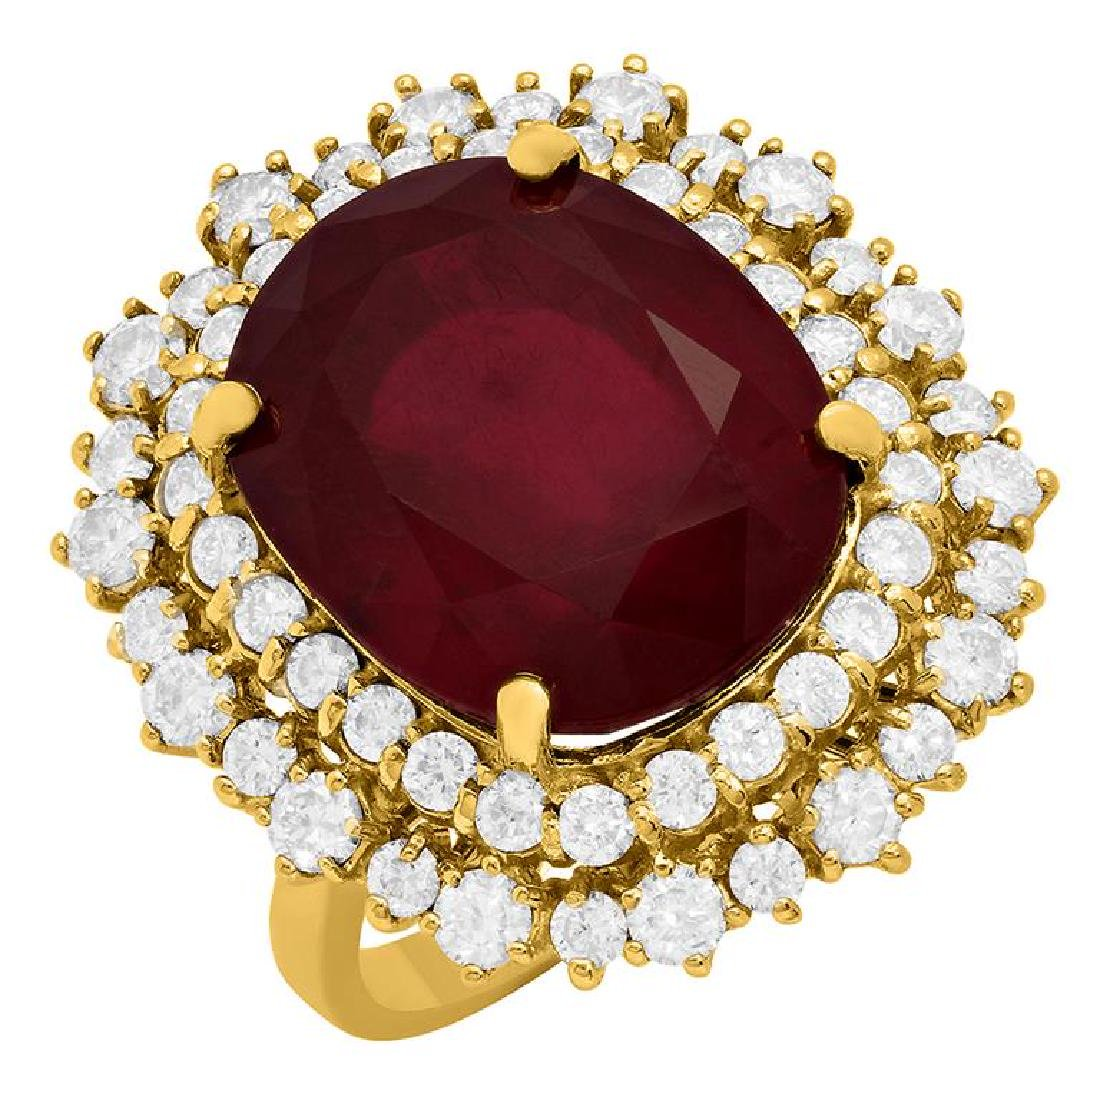 14k Yellow Gold 17.15ct Ruby 2.13ct Diamond Ring